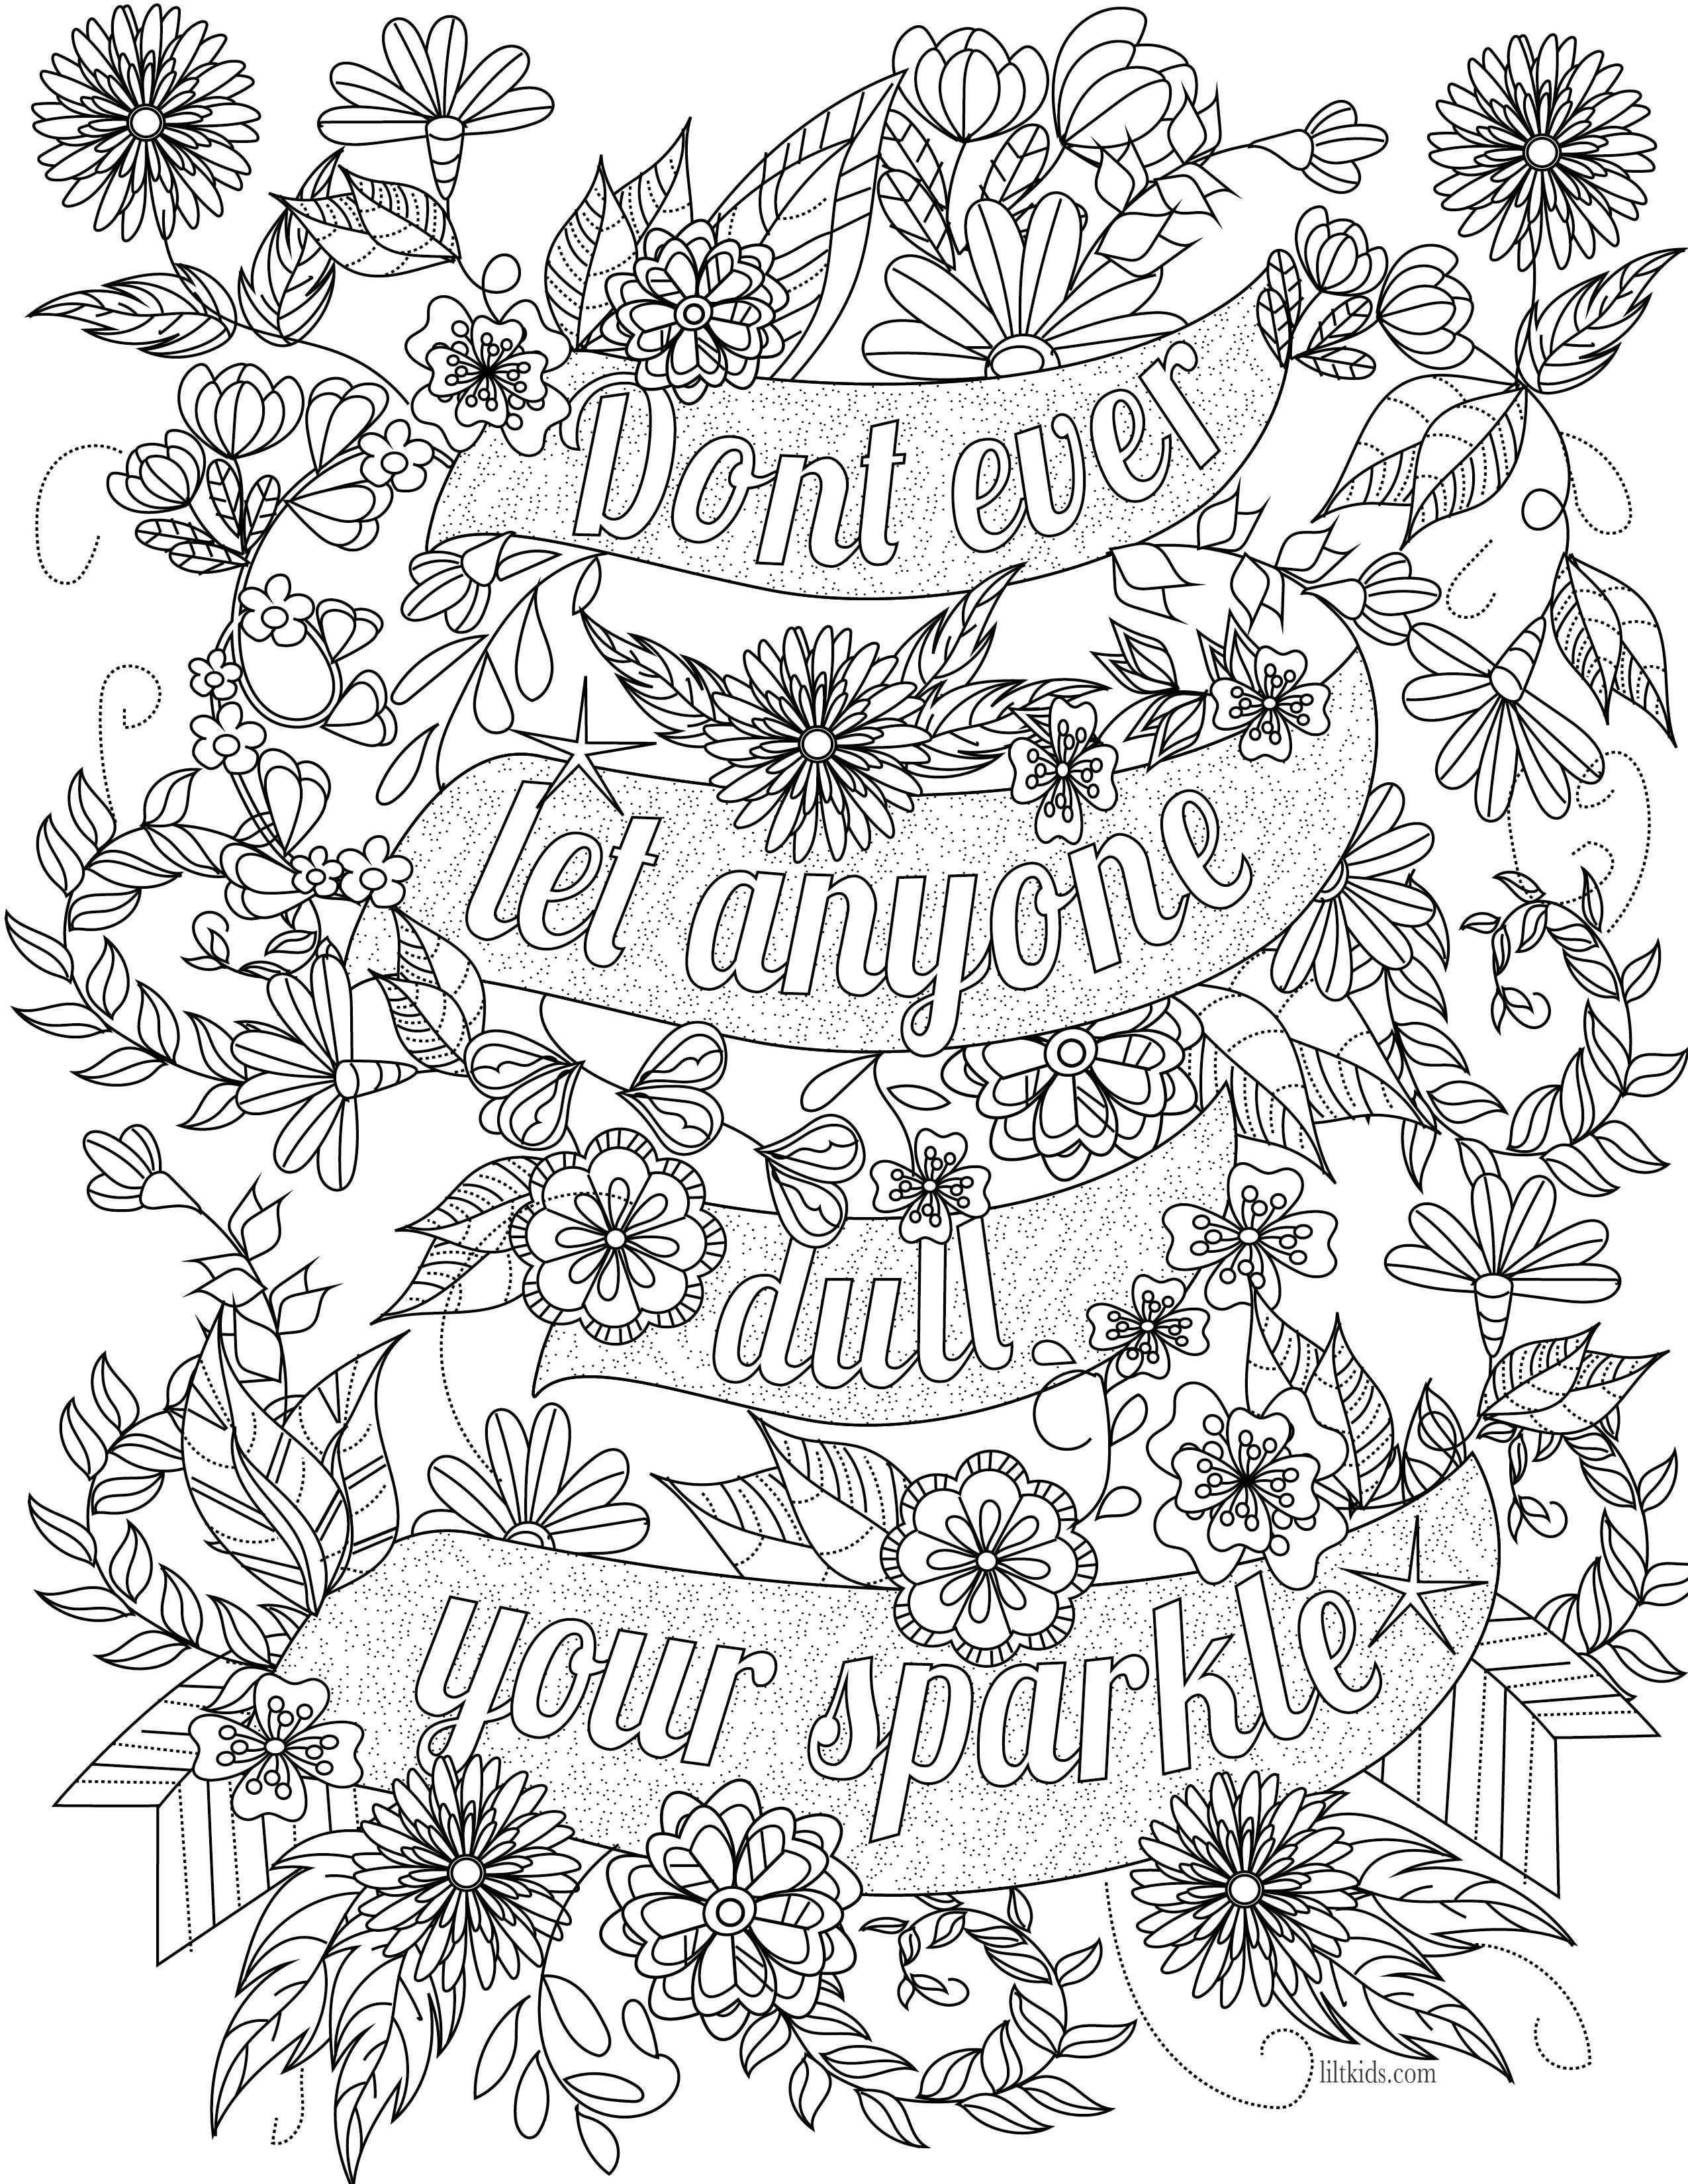 Month March Coloring Pages Beautiful Inspirational Quotes Coloring Pages Fresh Awesome Od Dog Coloring